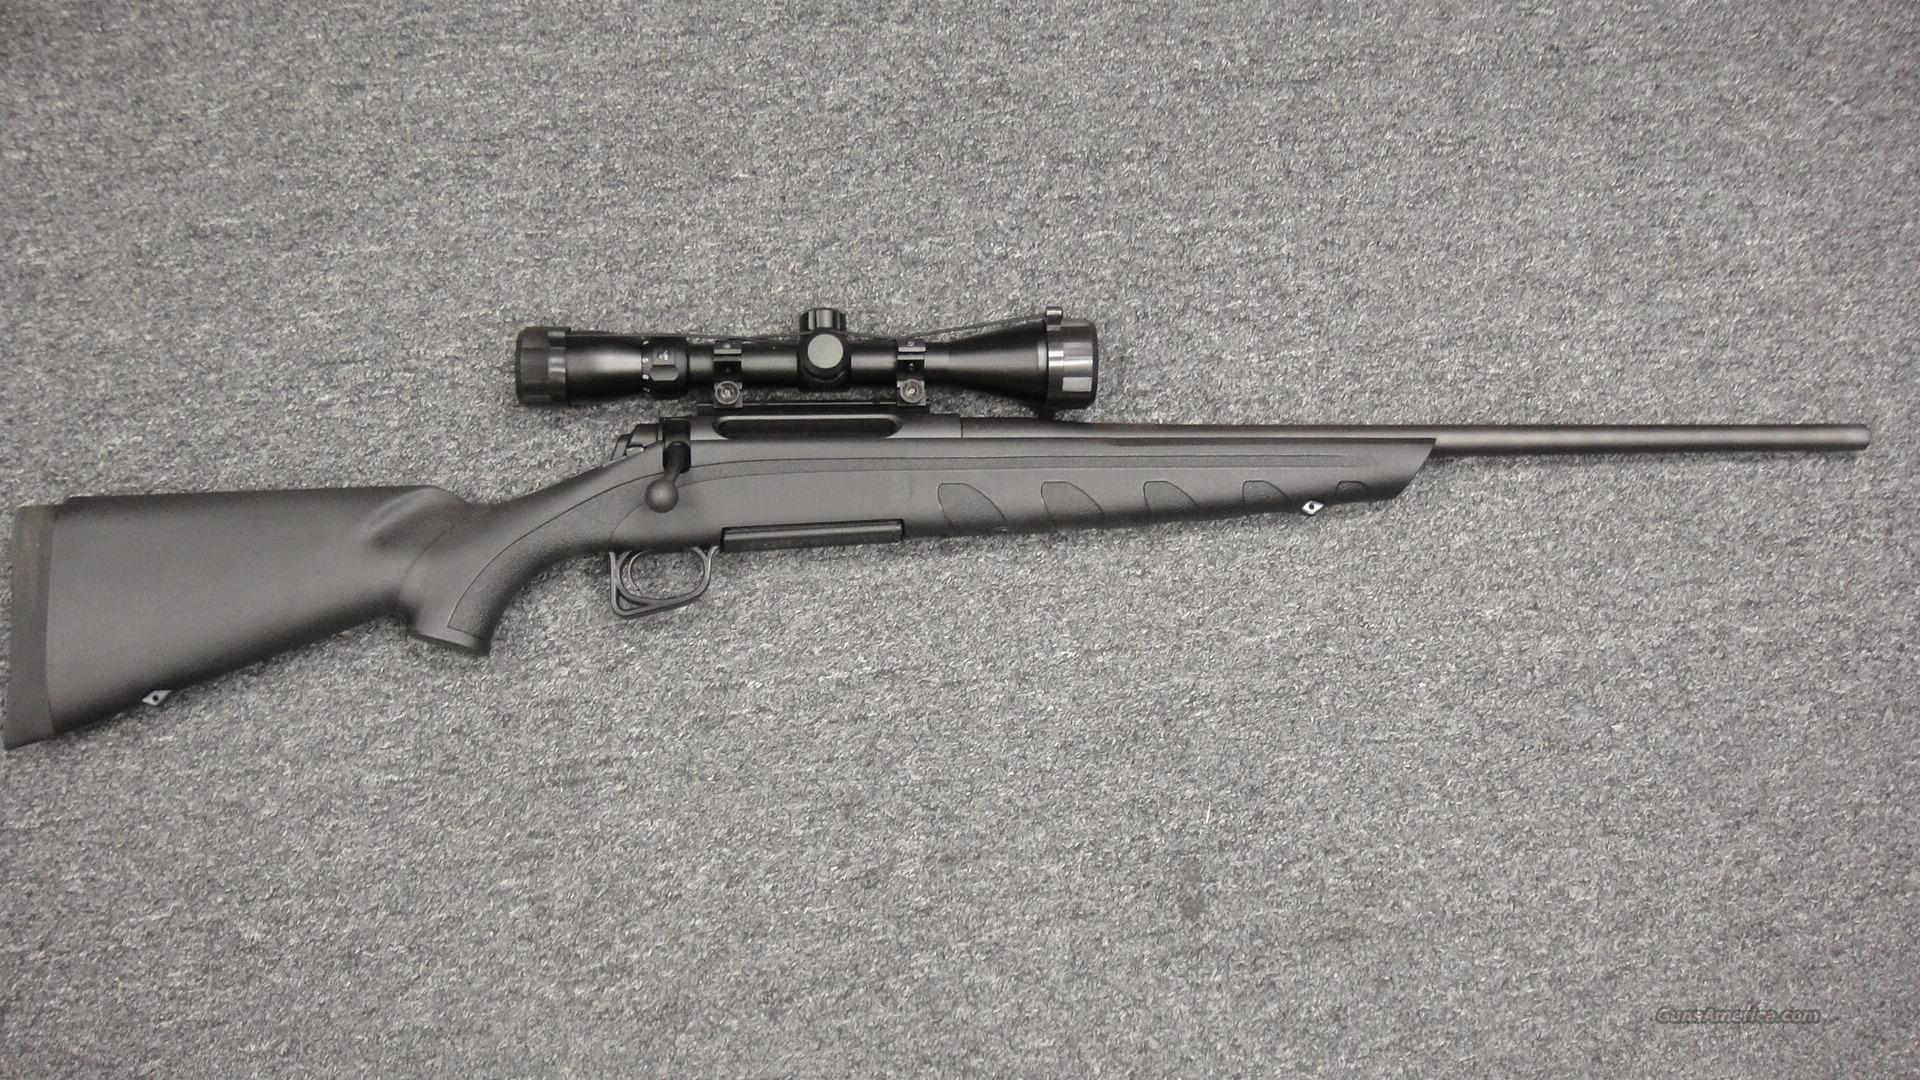 Remington 770 in .270 for sale